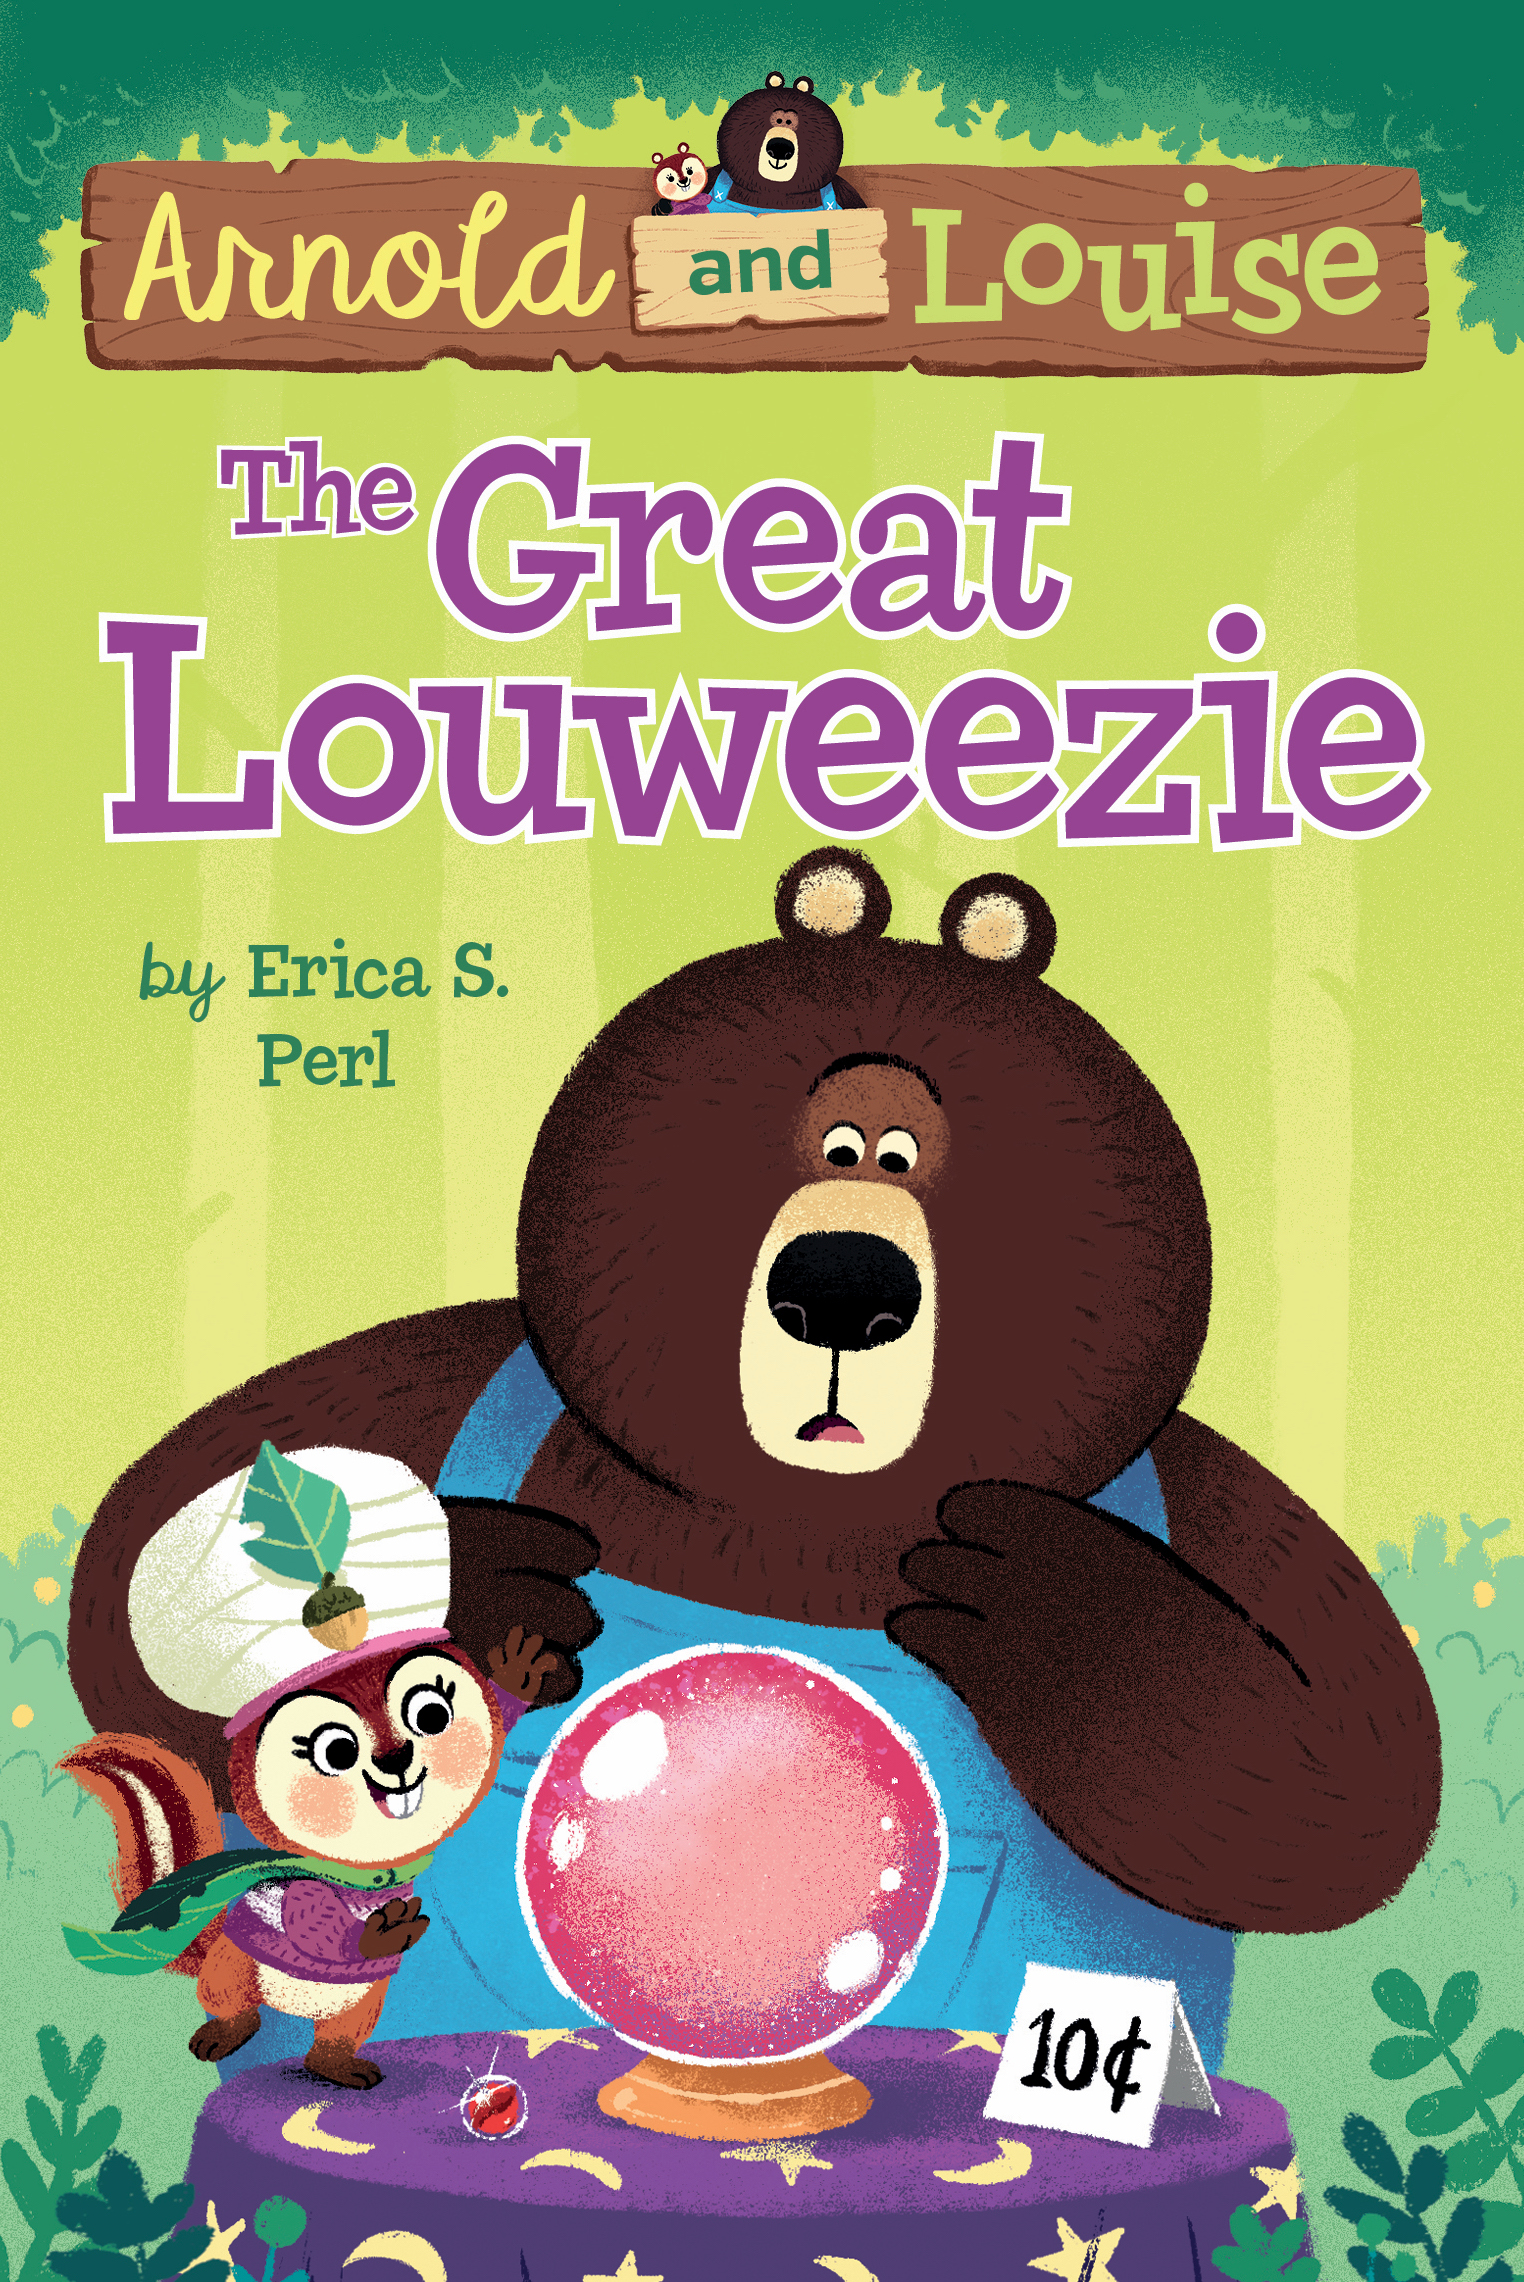 Arnold and Louise: The Great Louweezie